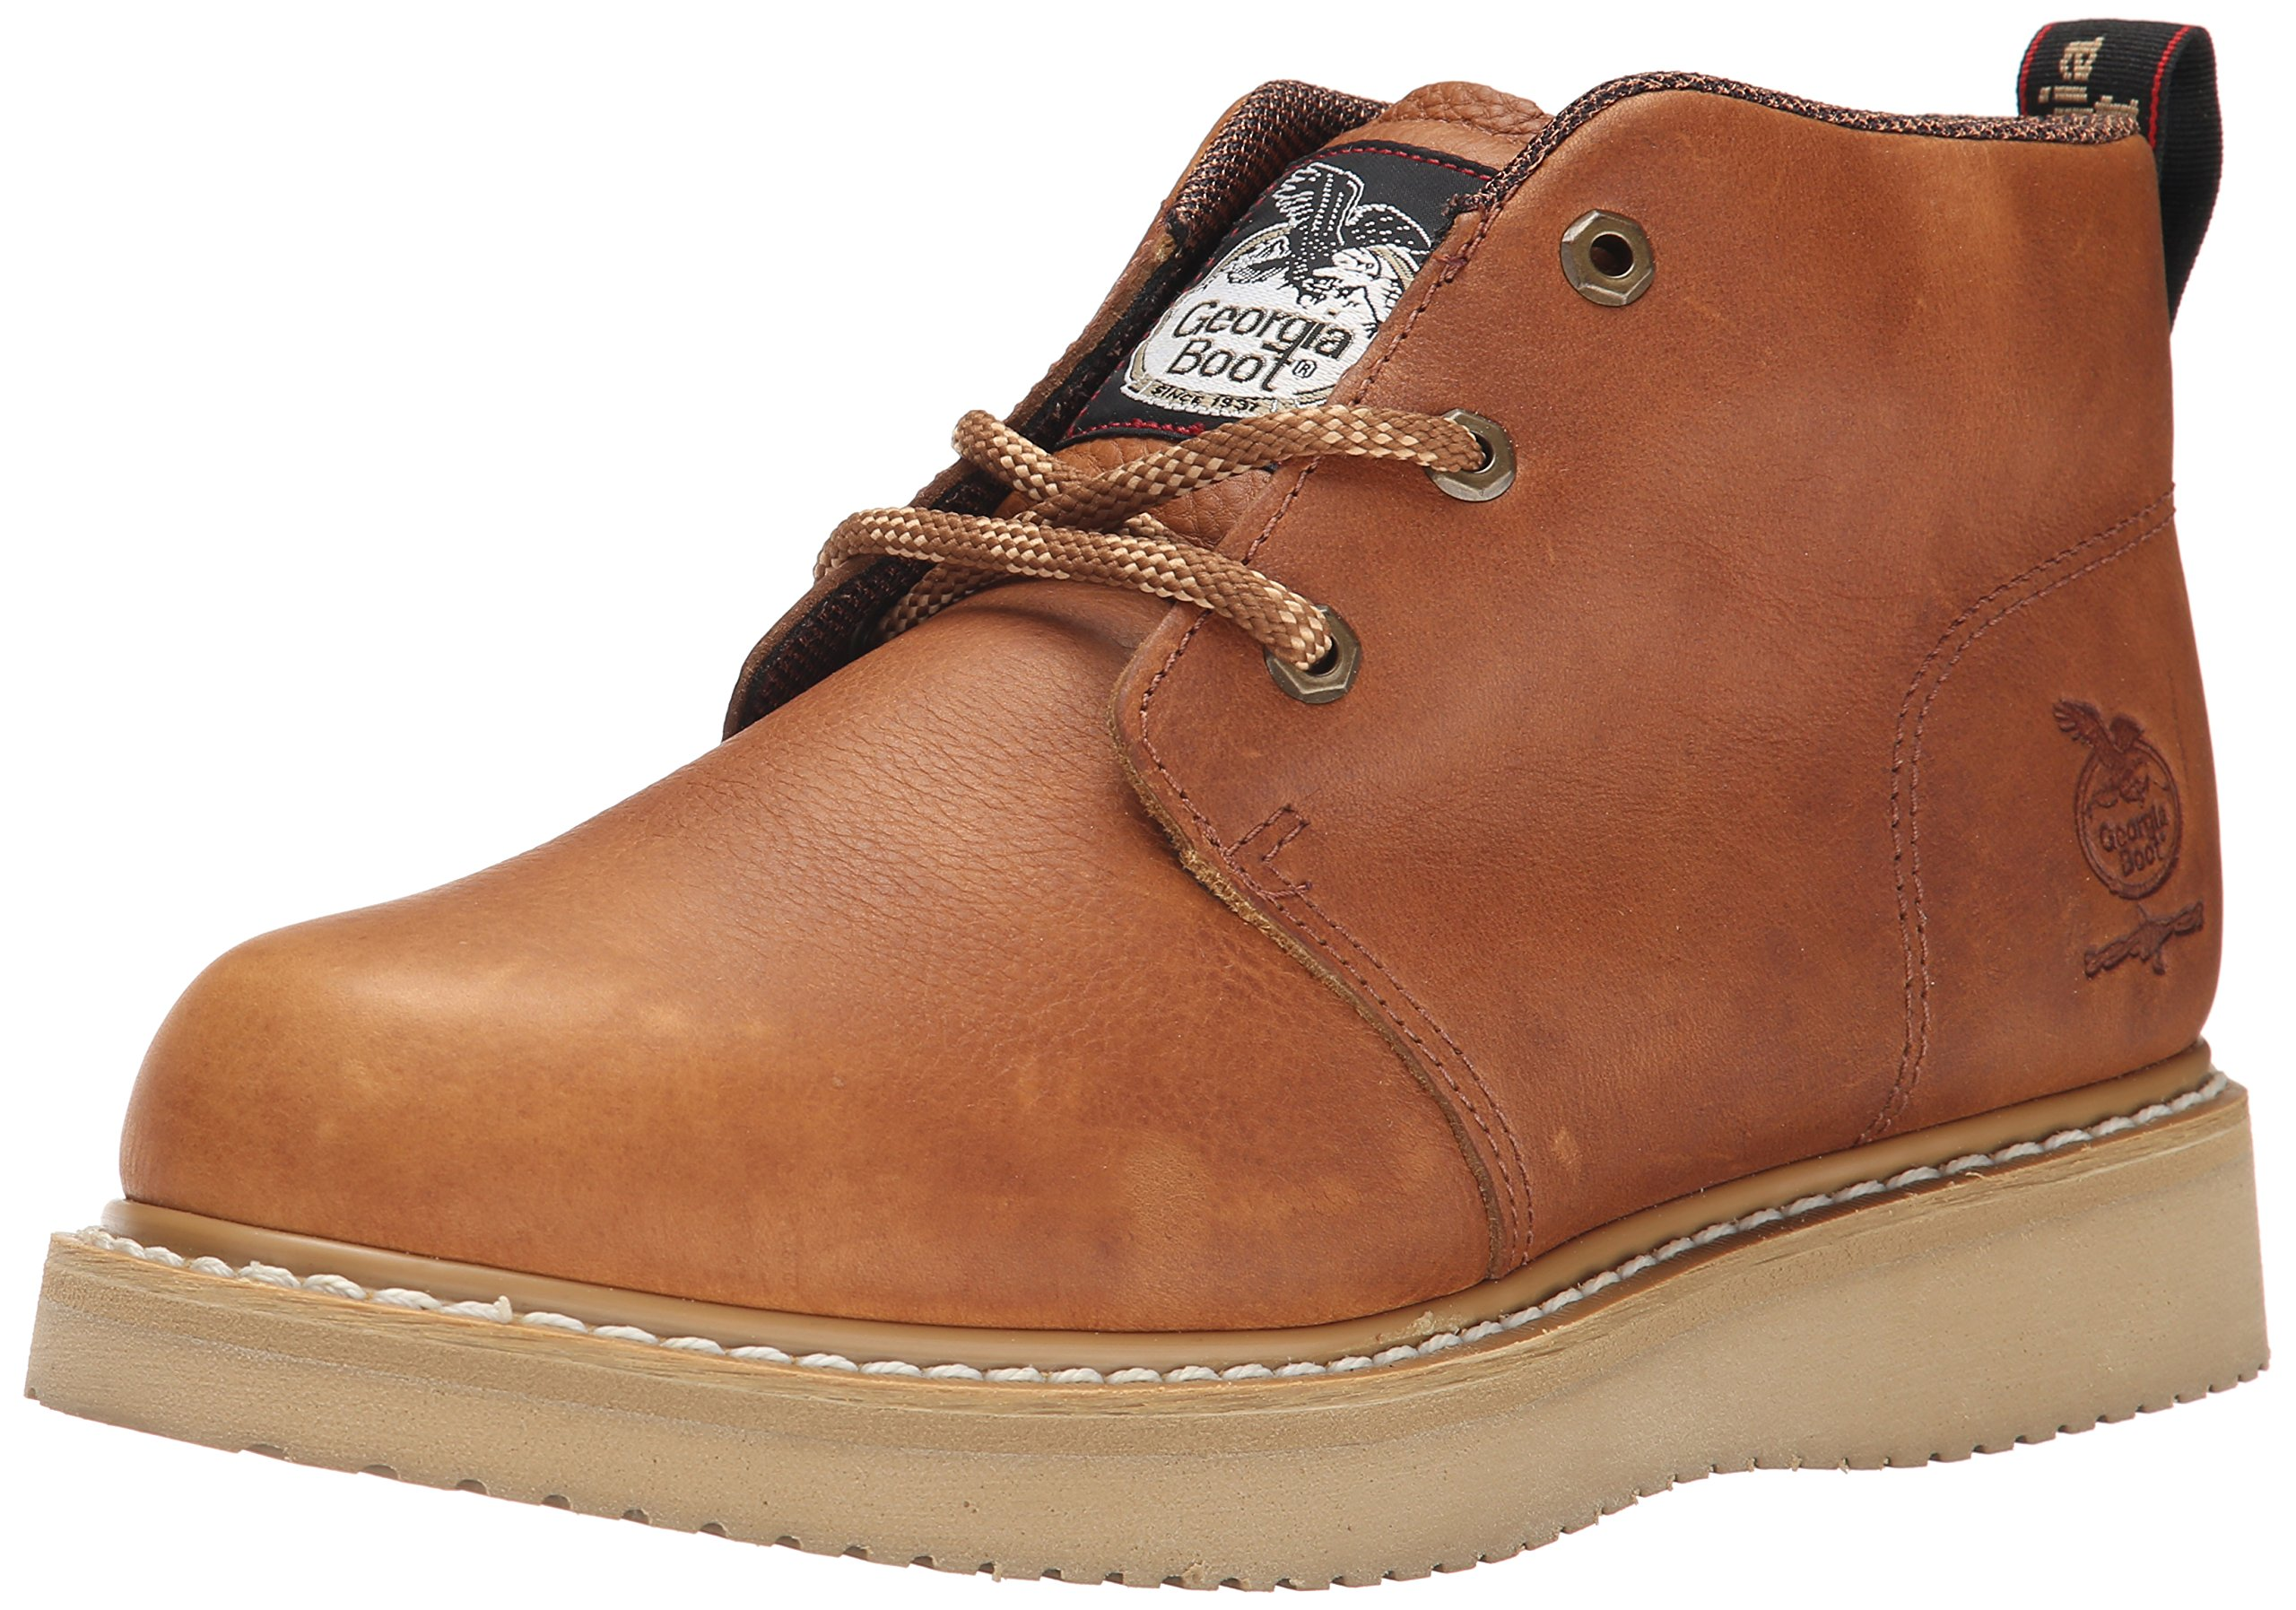 Georgia Boot Men's GB1222 Chukka Boot,Barracuda Gold,10.5 W US